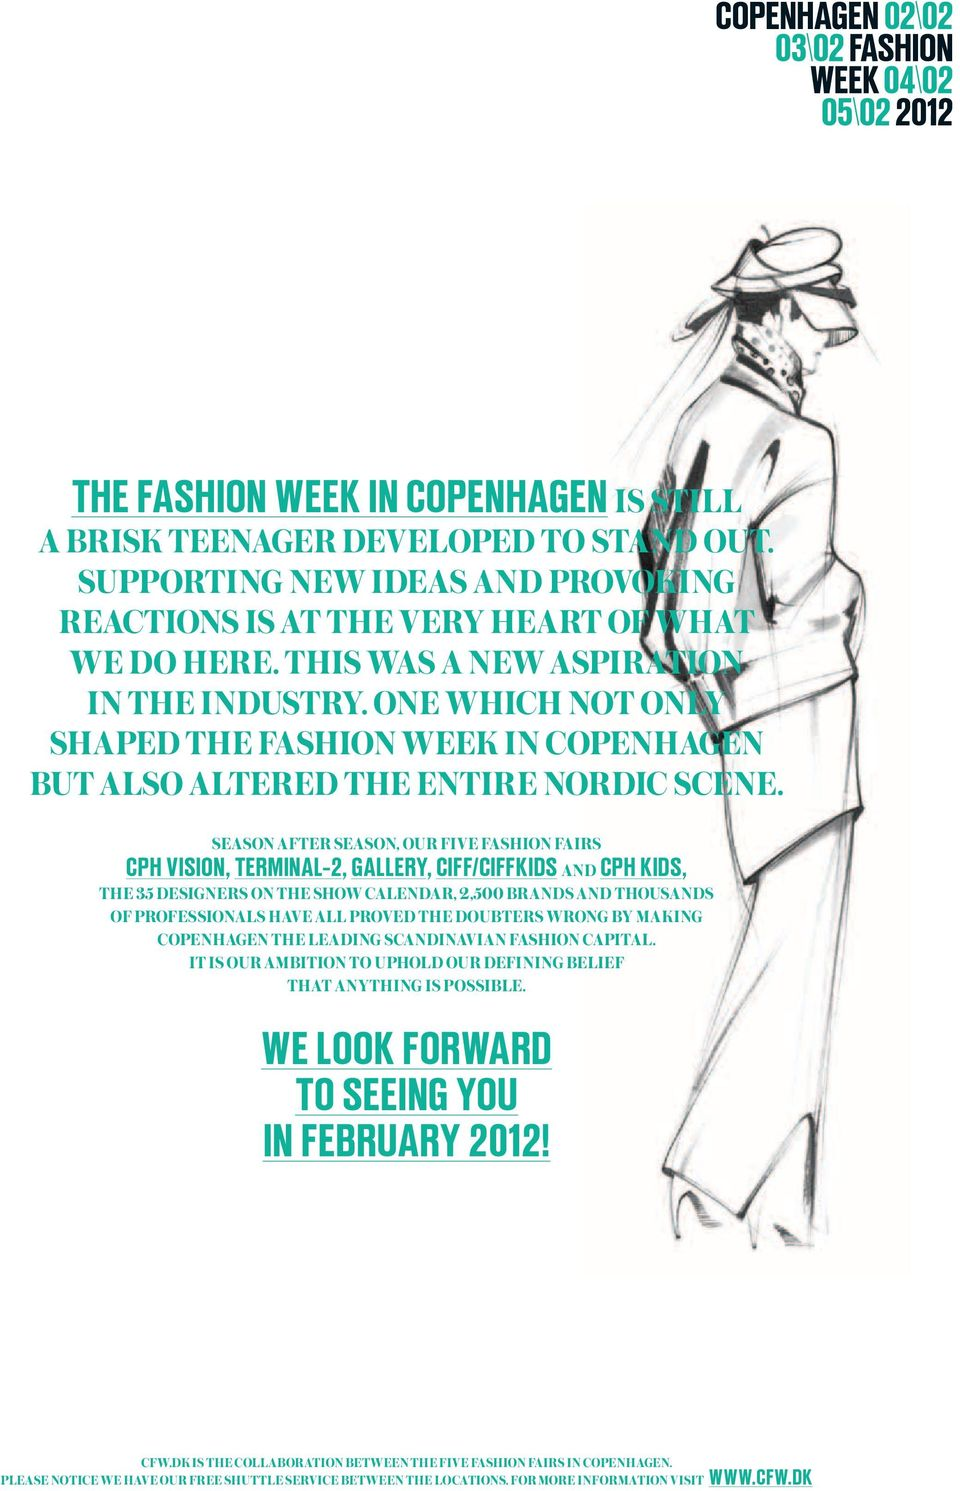 season after season, our Five Fashion Fairs cph Vision, Terminal-2, gallery, ciff/ciffkids and cph kids, the 35 Designers on the show CalenDar, 2,500 brands and thousands of professionals have all